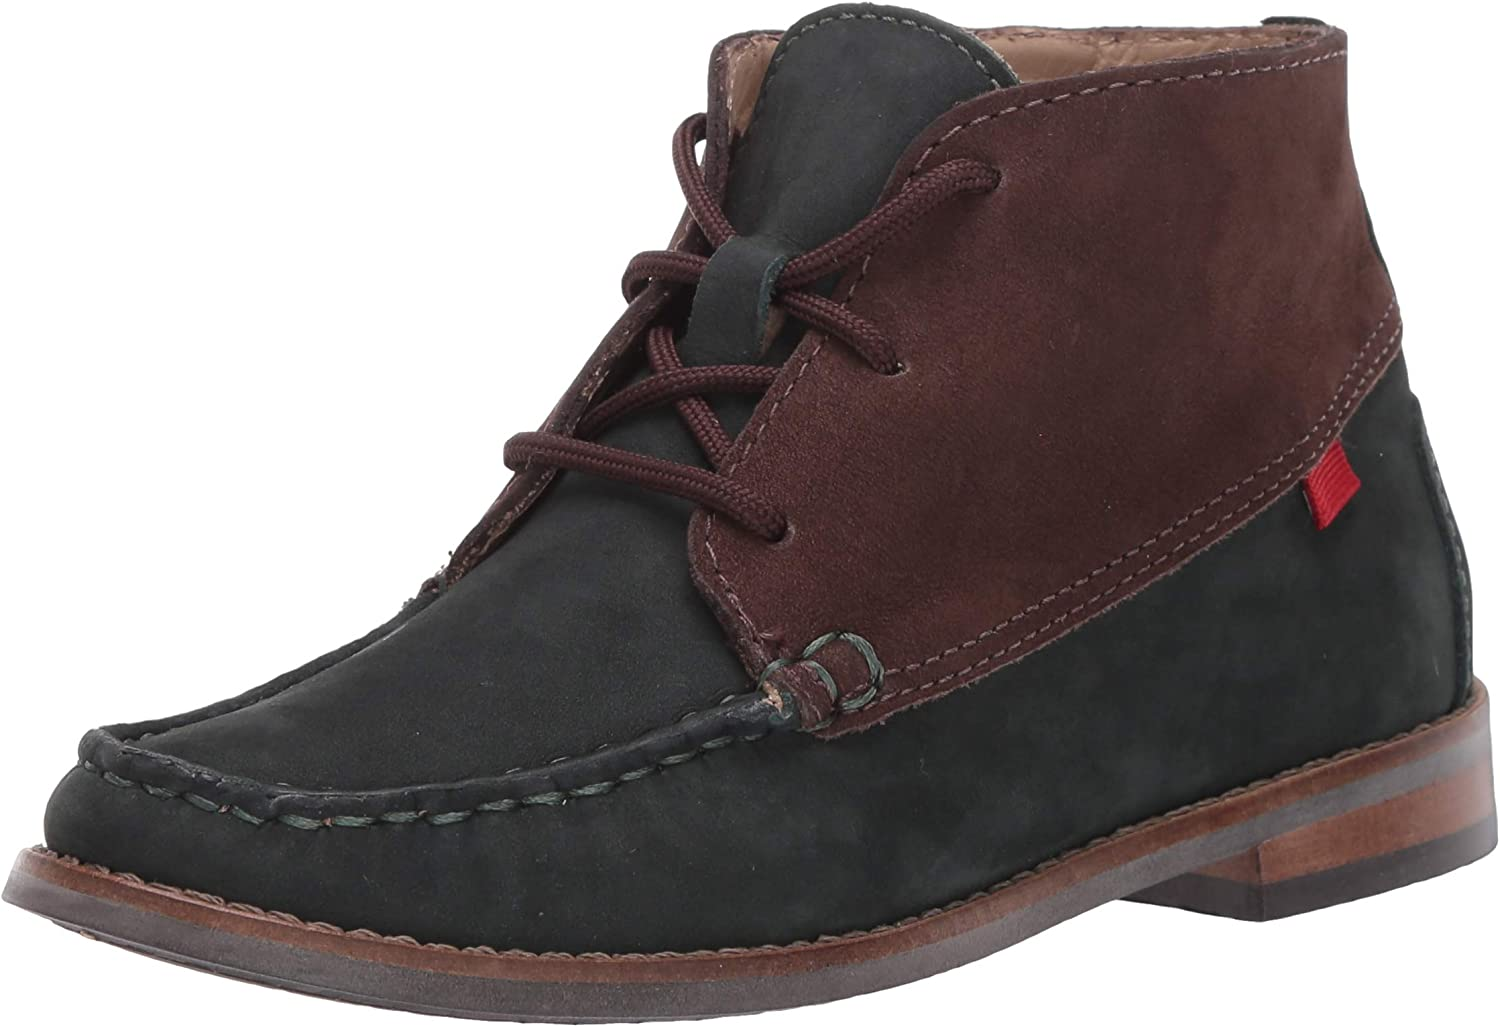 Marc Now free shipping Joseph New York Unisex-Child Leather Chukka Made Brazil in Discount is also underway